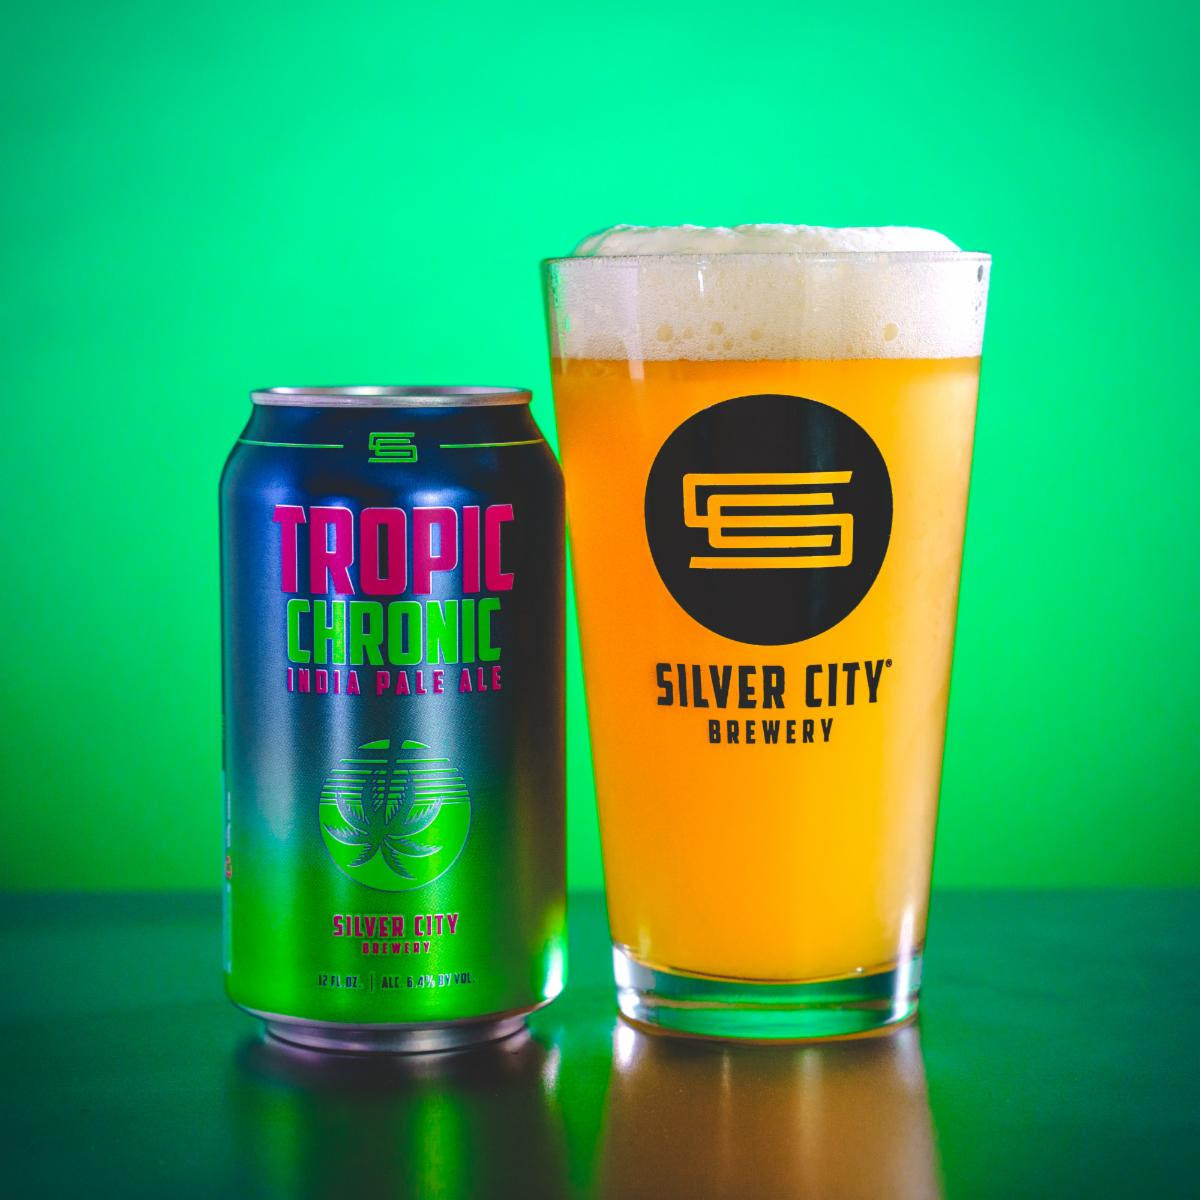 image of Tropic Chronic IPA courtesy of Silver City Brewery